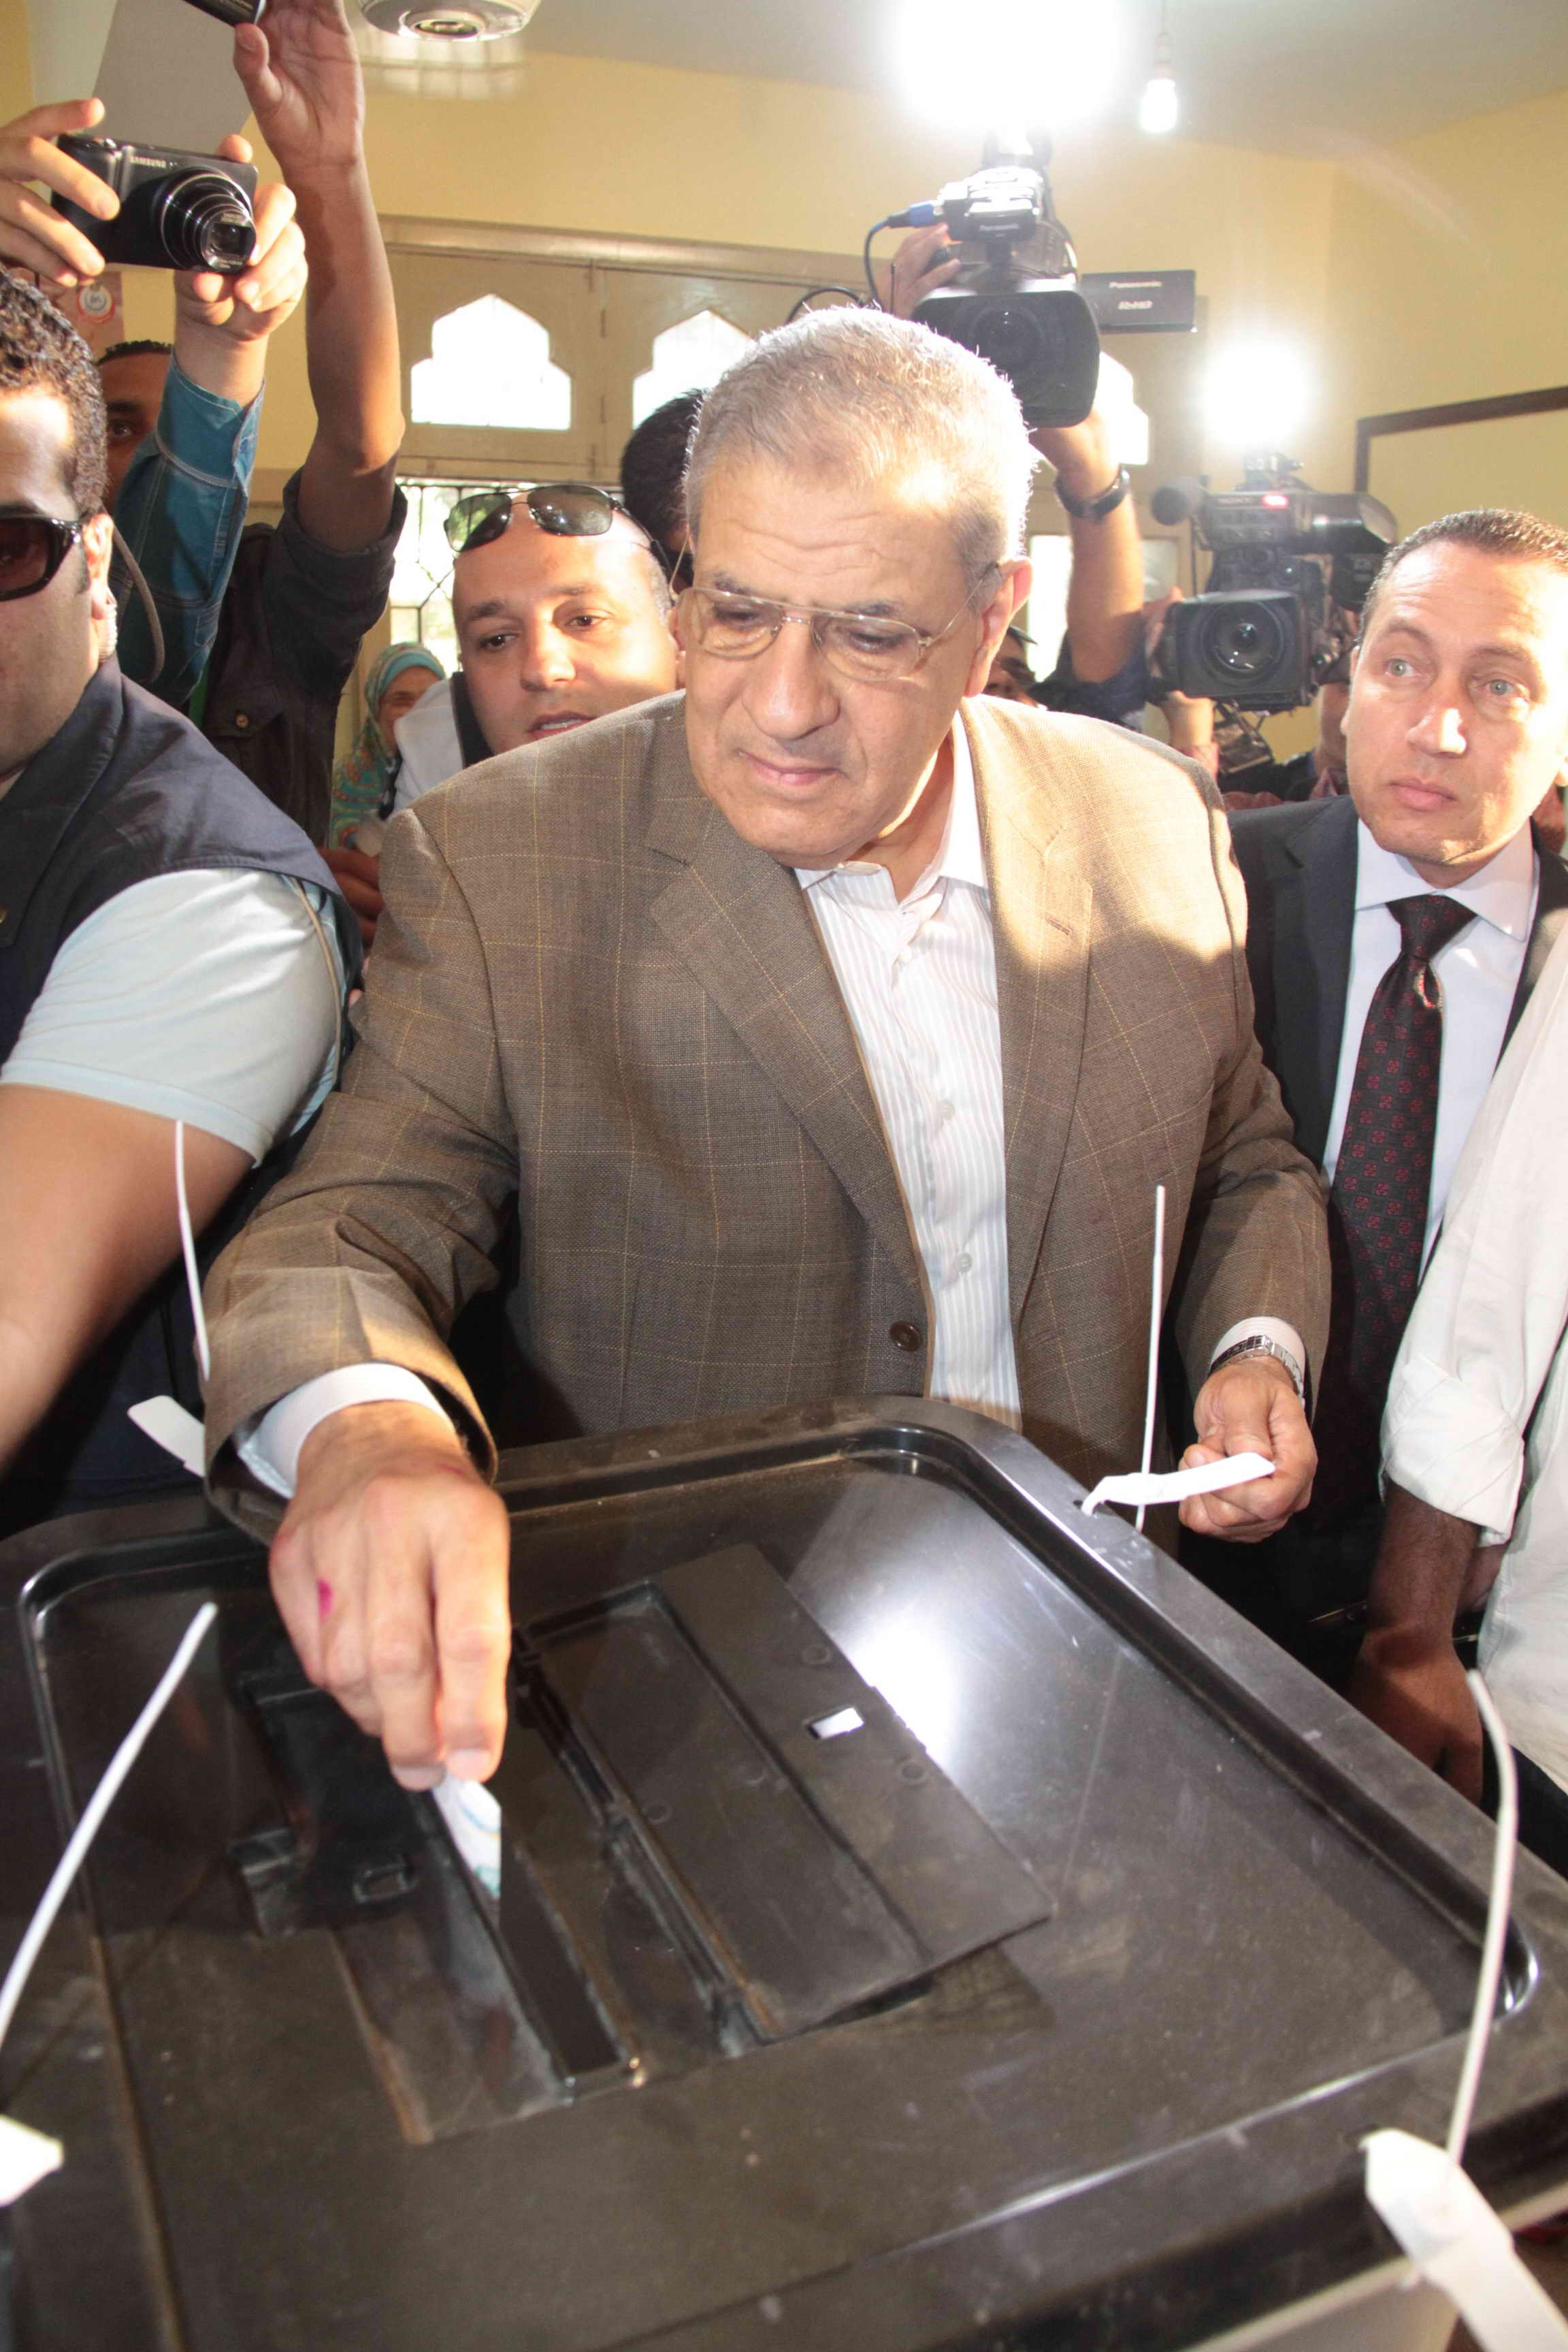 Interim Prime Minister Ibrahim Mehleb is voting in the Presidential Election on Monday. (Photo by AHmed Al-Malky)